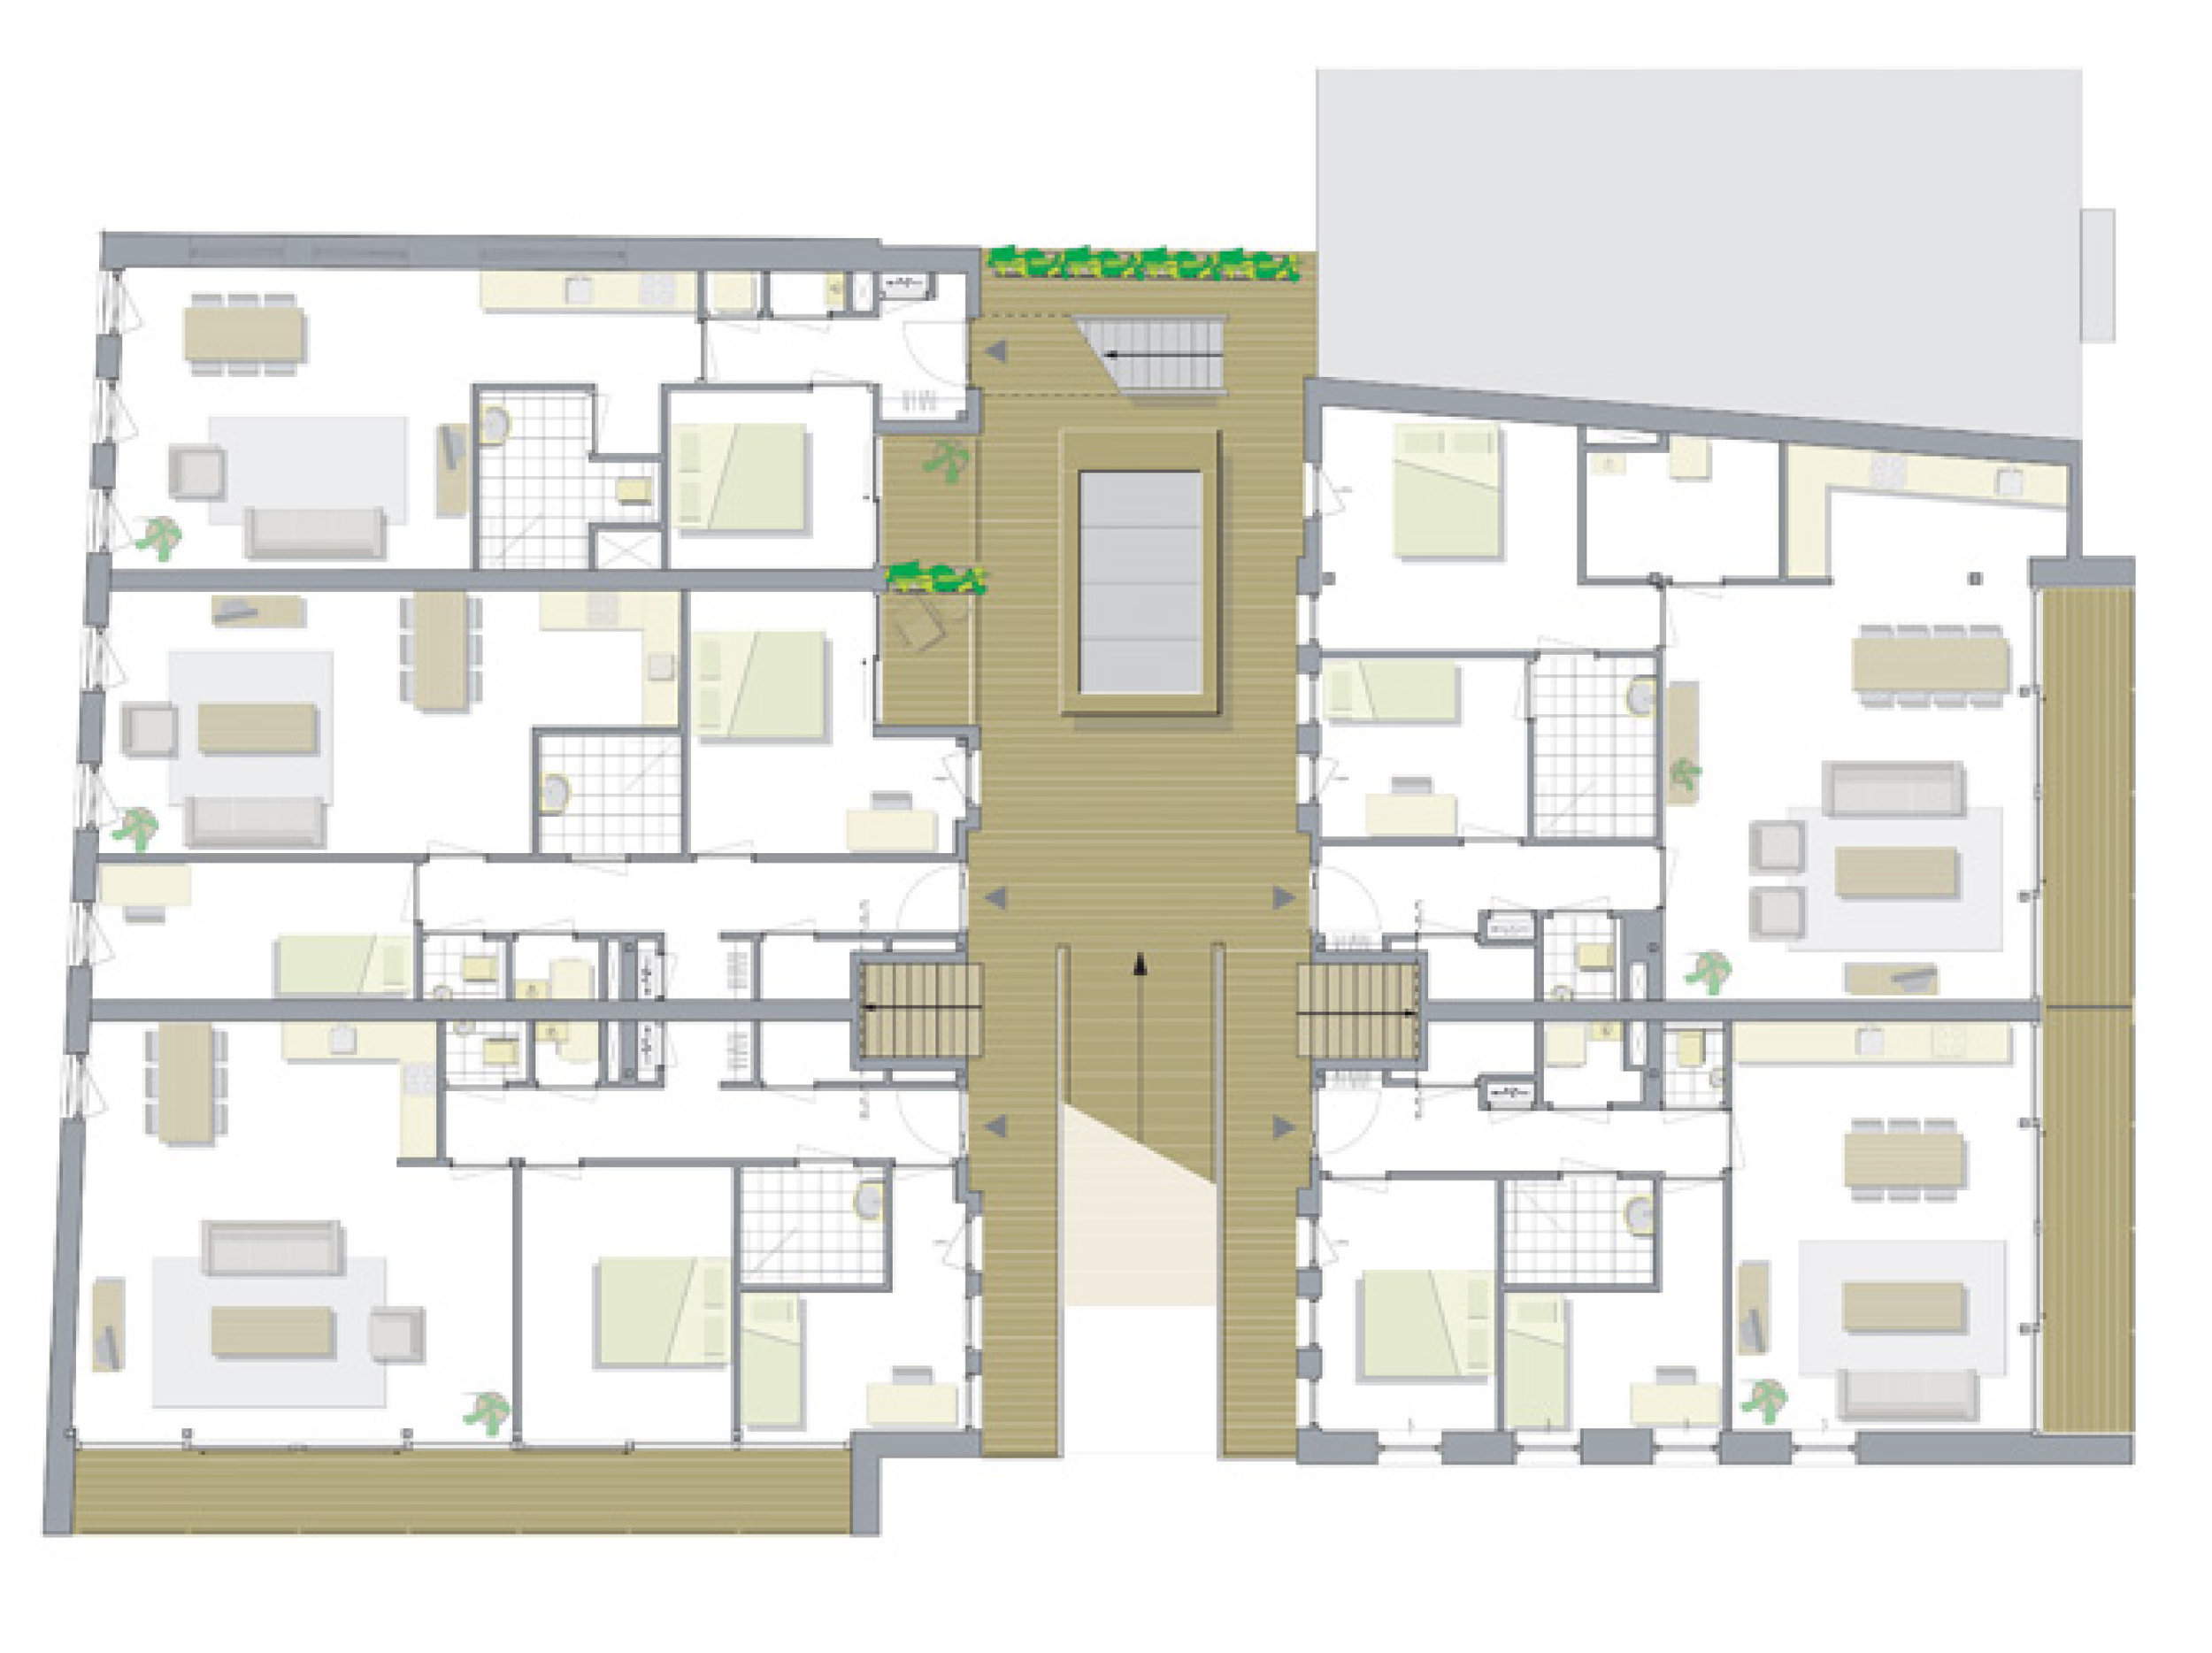 plan of the apartments on the first floor